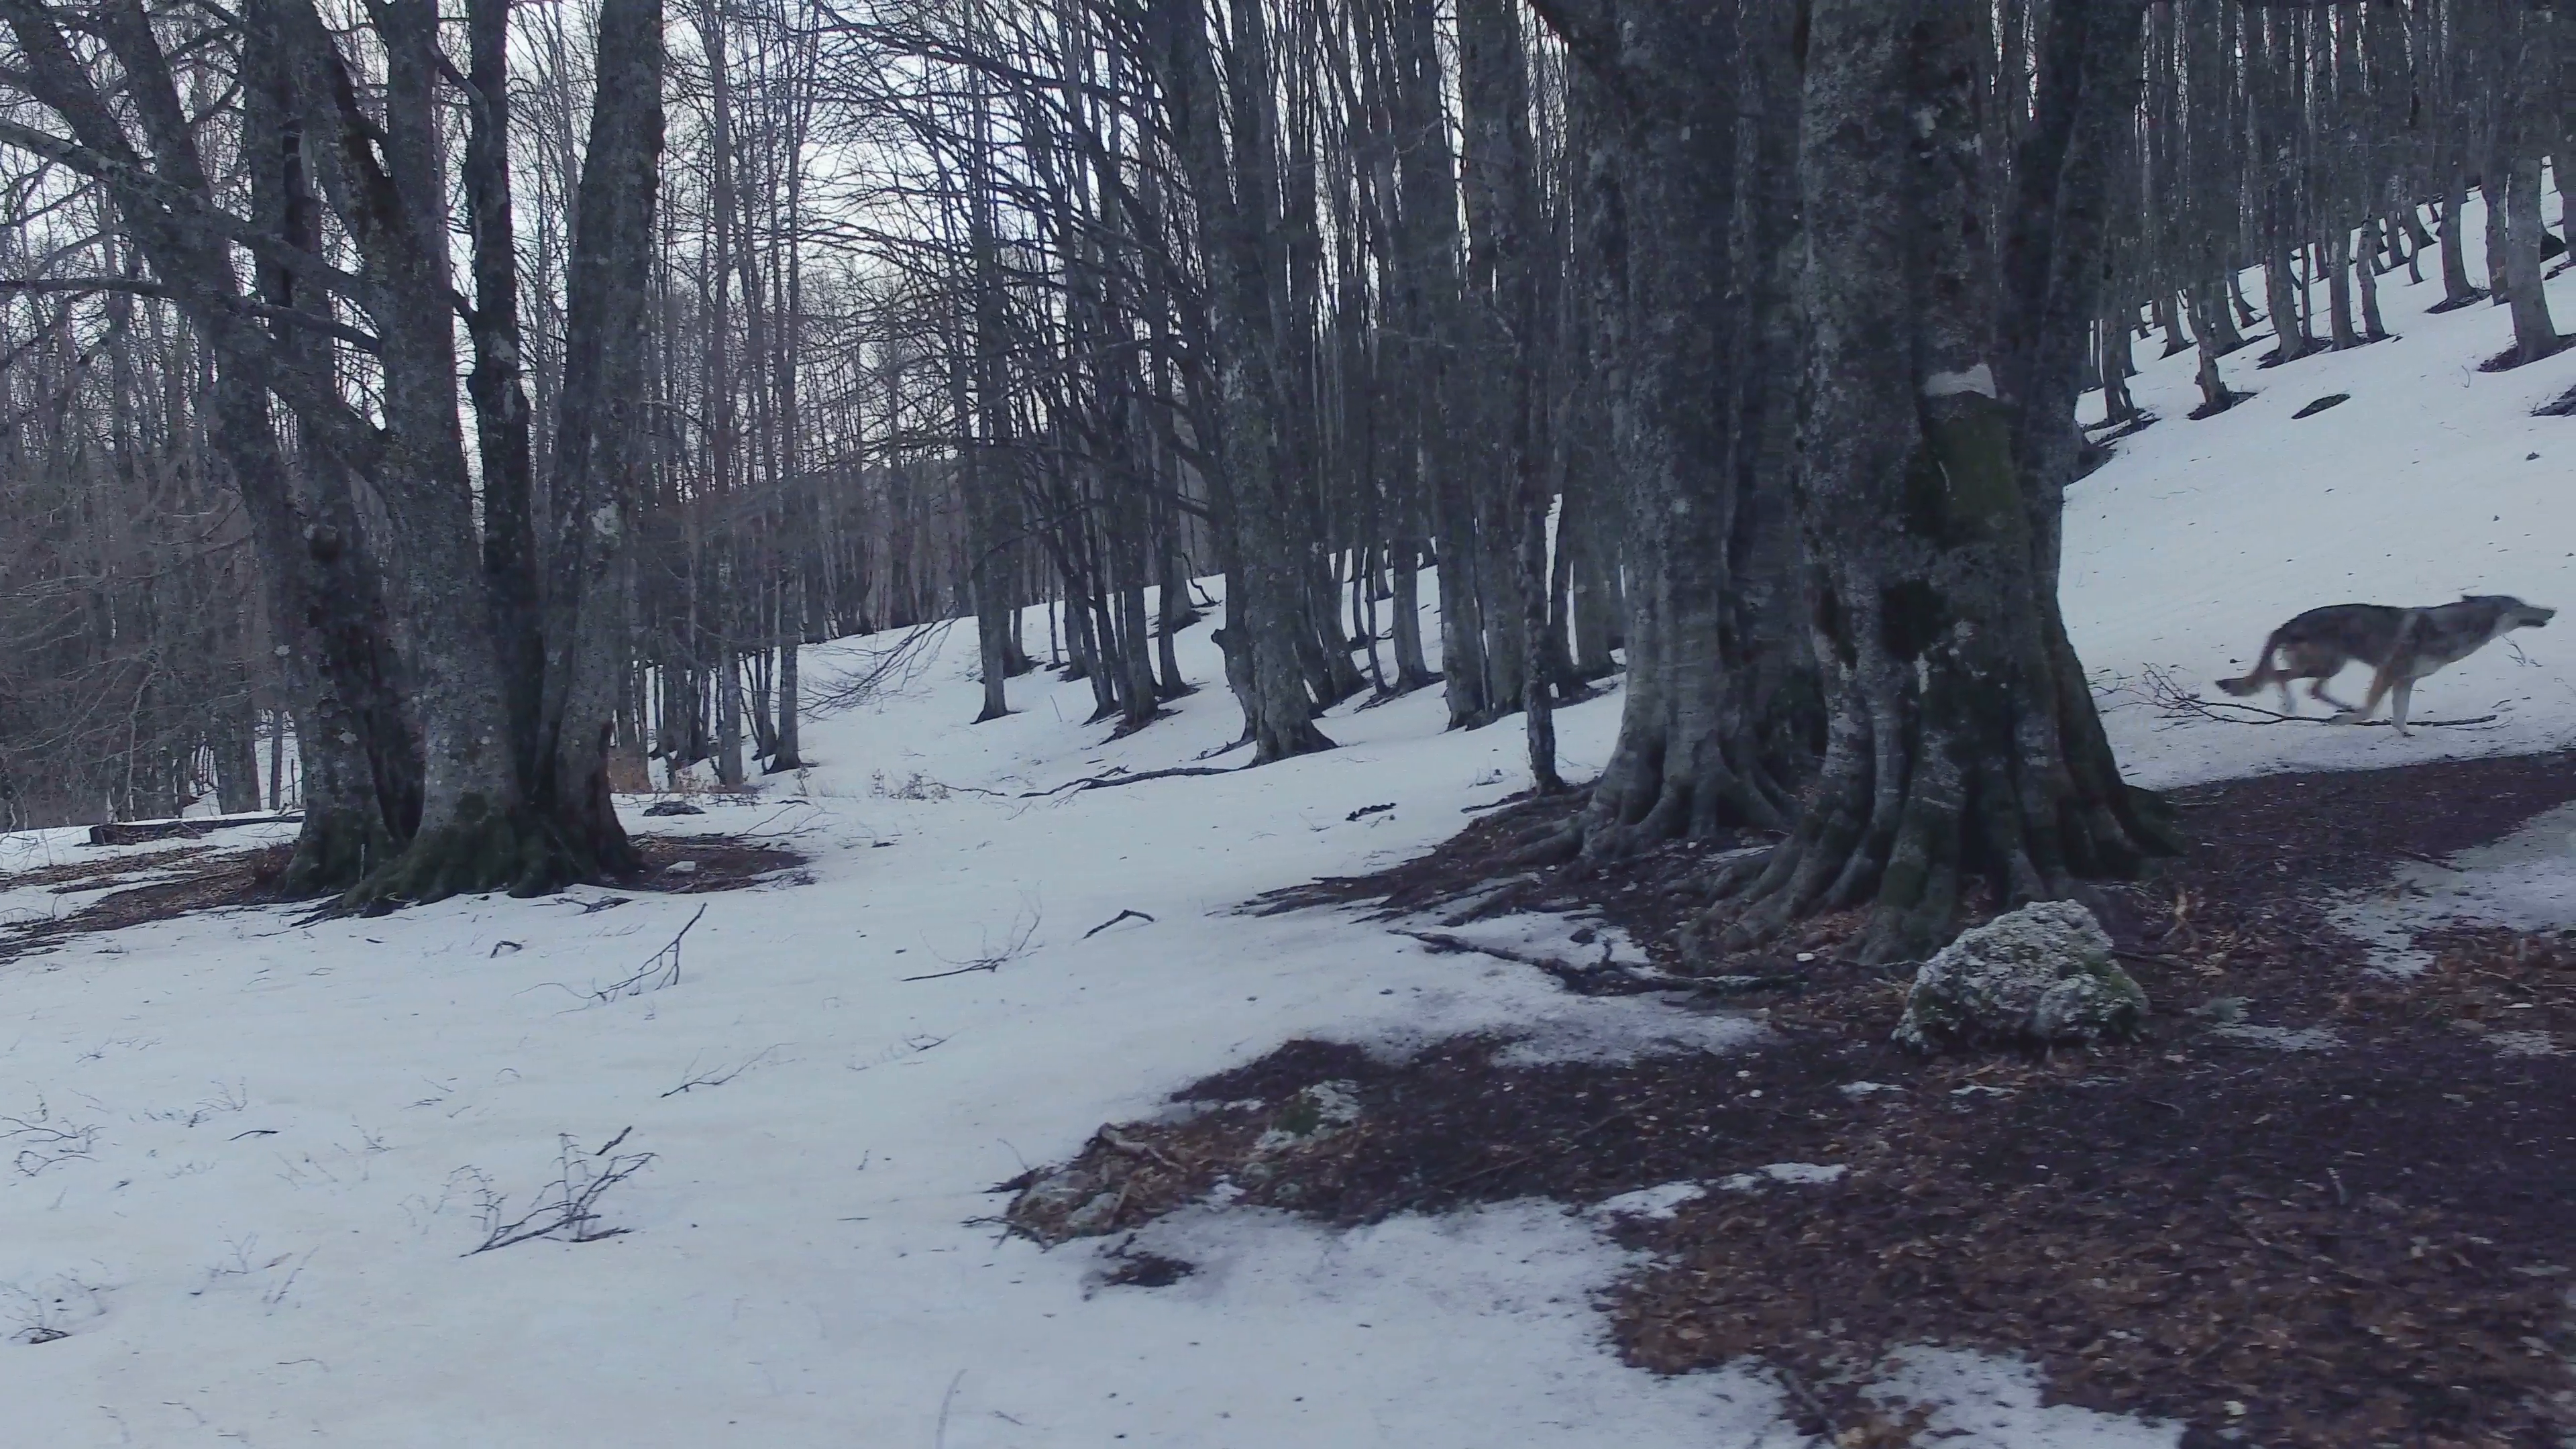 A wolf runs in a snowy forest in the mountains at the evening. Drone ...